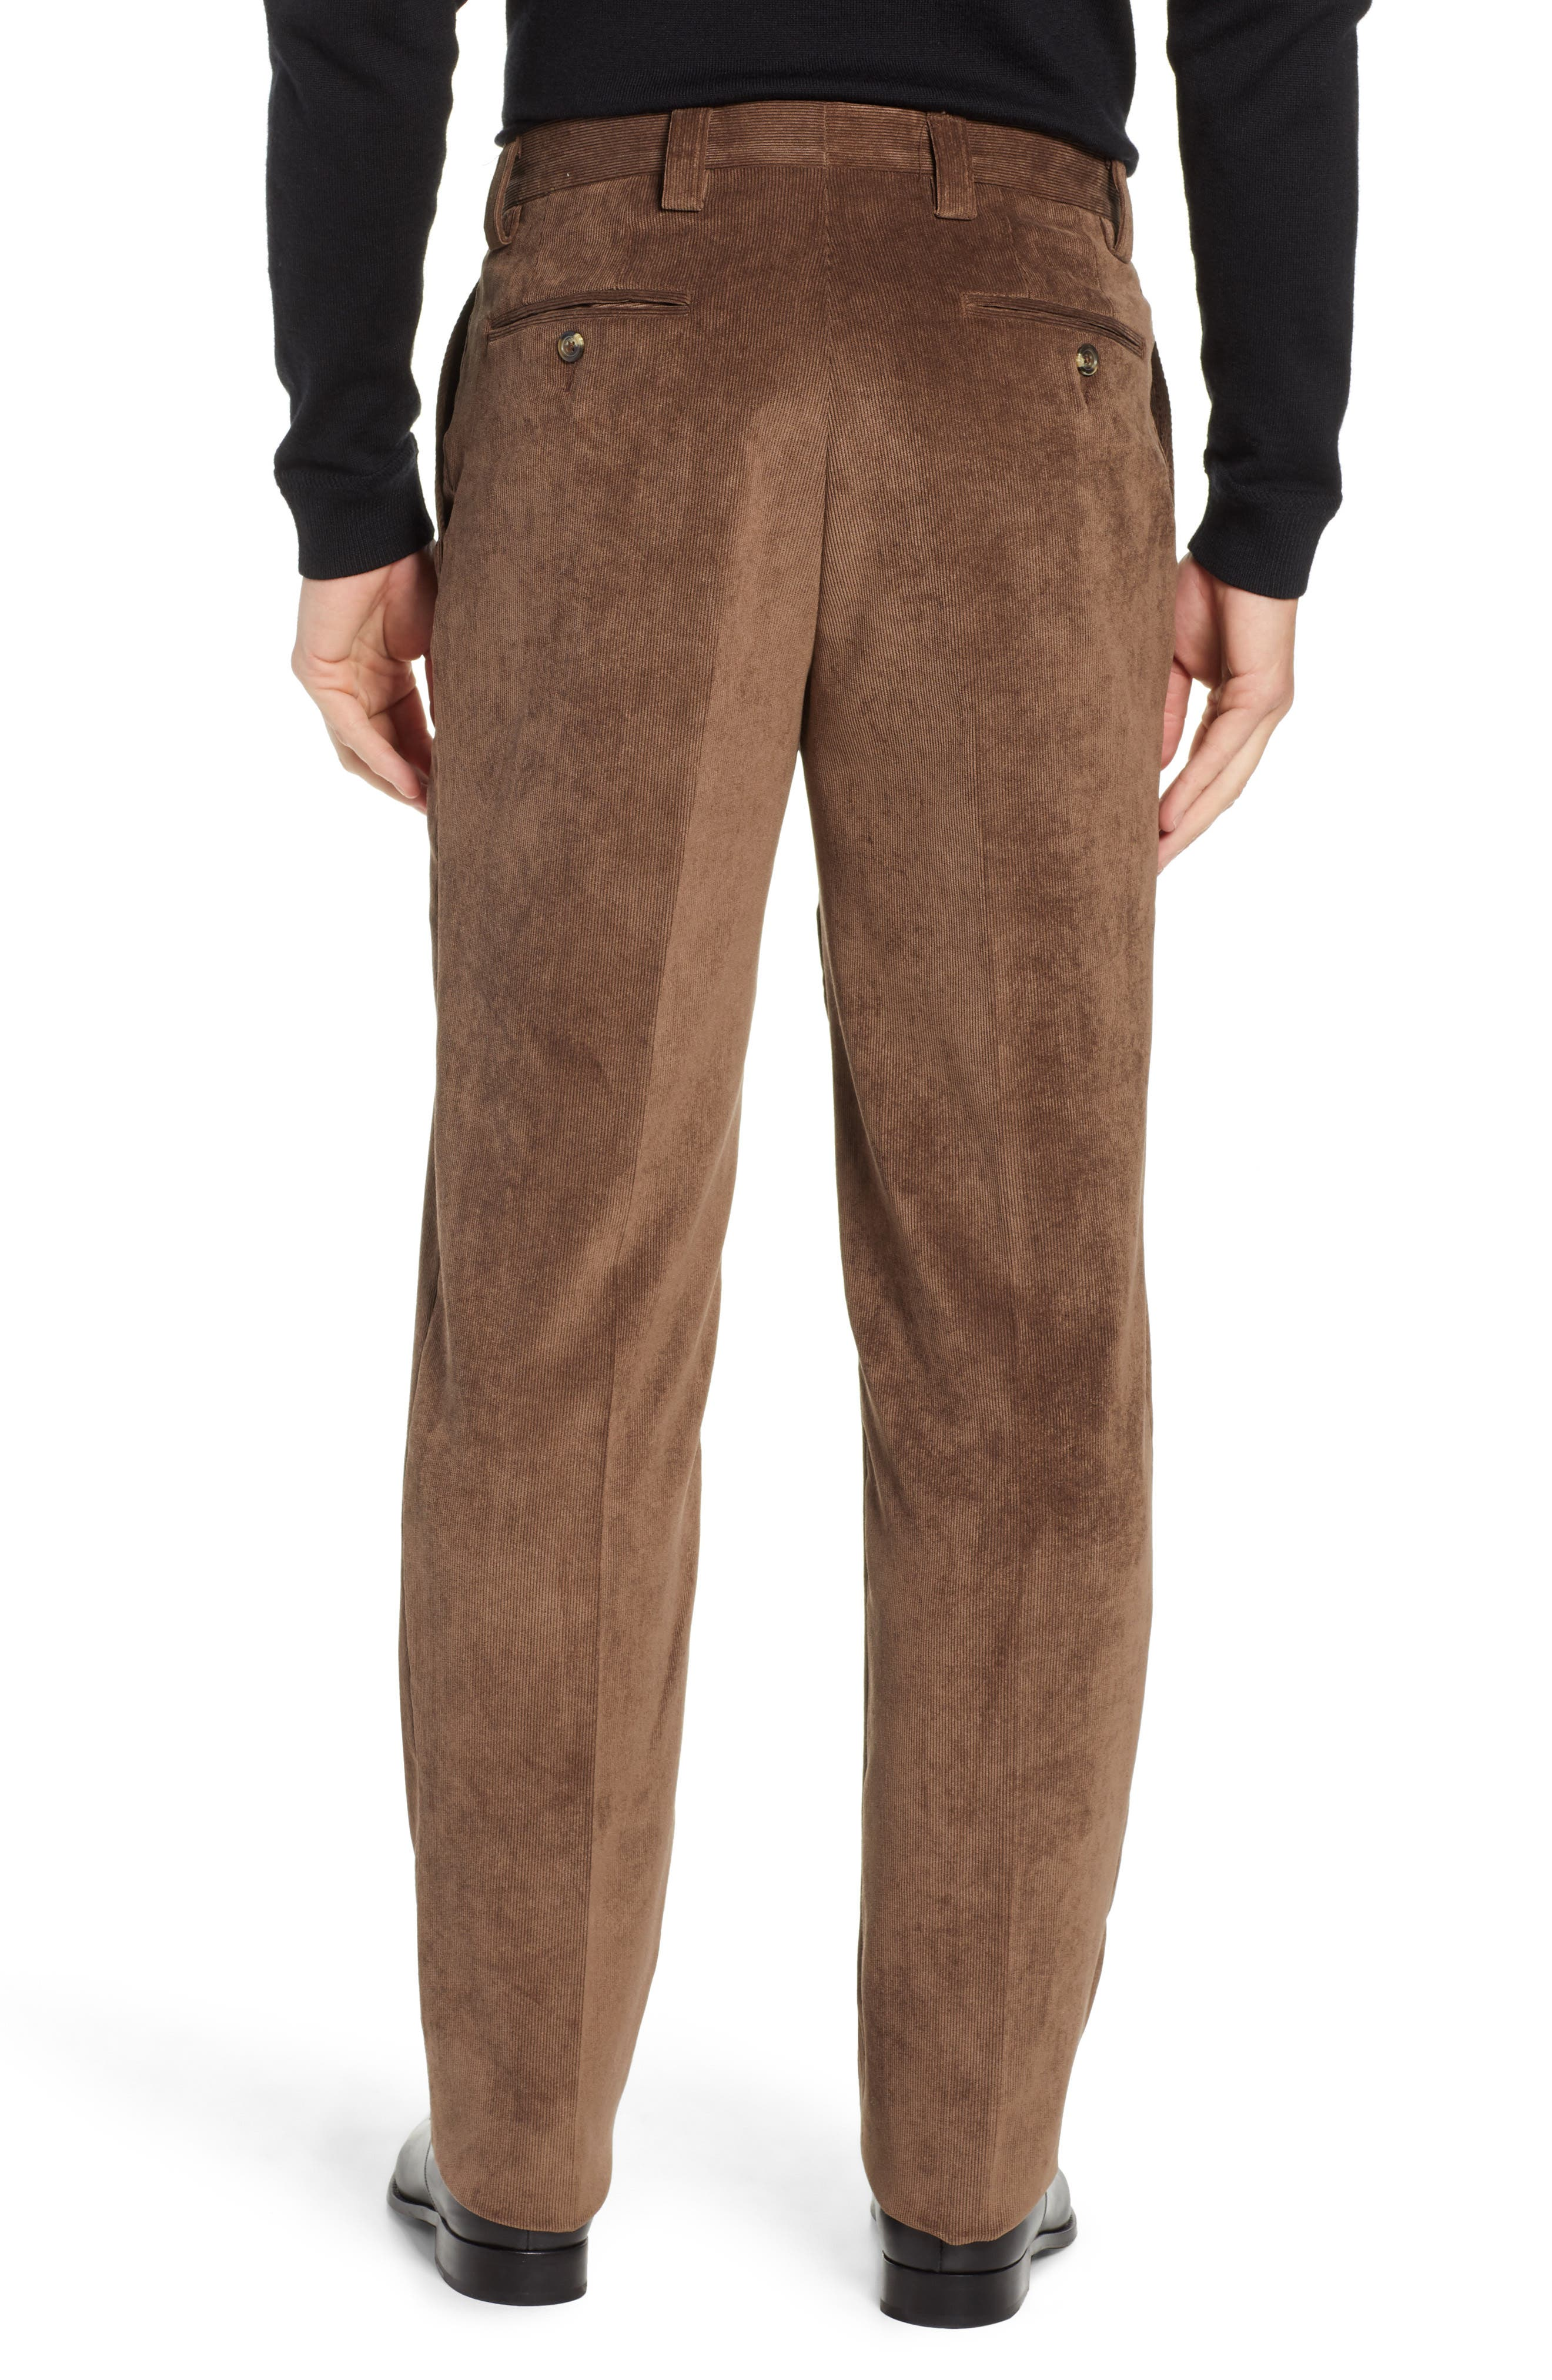 BERLE,                             Classic Fit Flat Front Corduroy Trousers,                             Alternate thumbnail 2, color,                             200